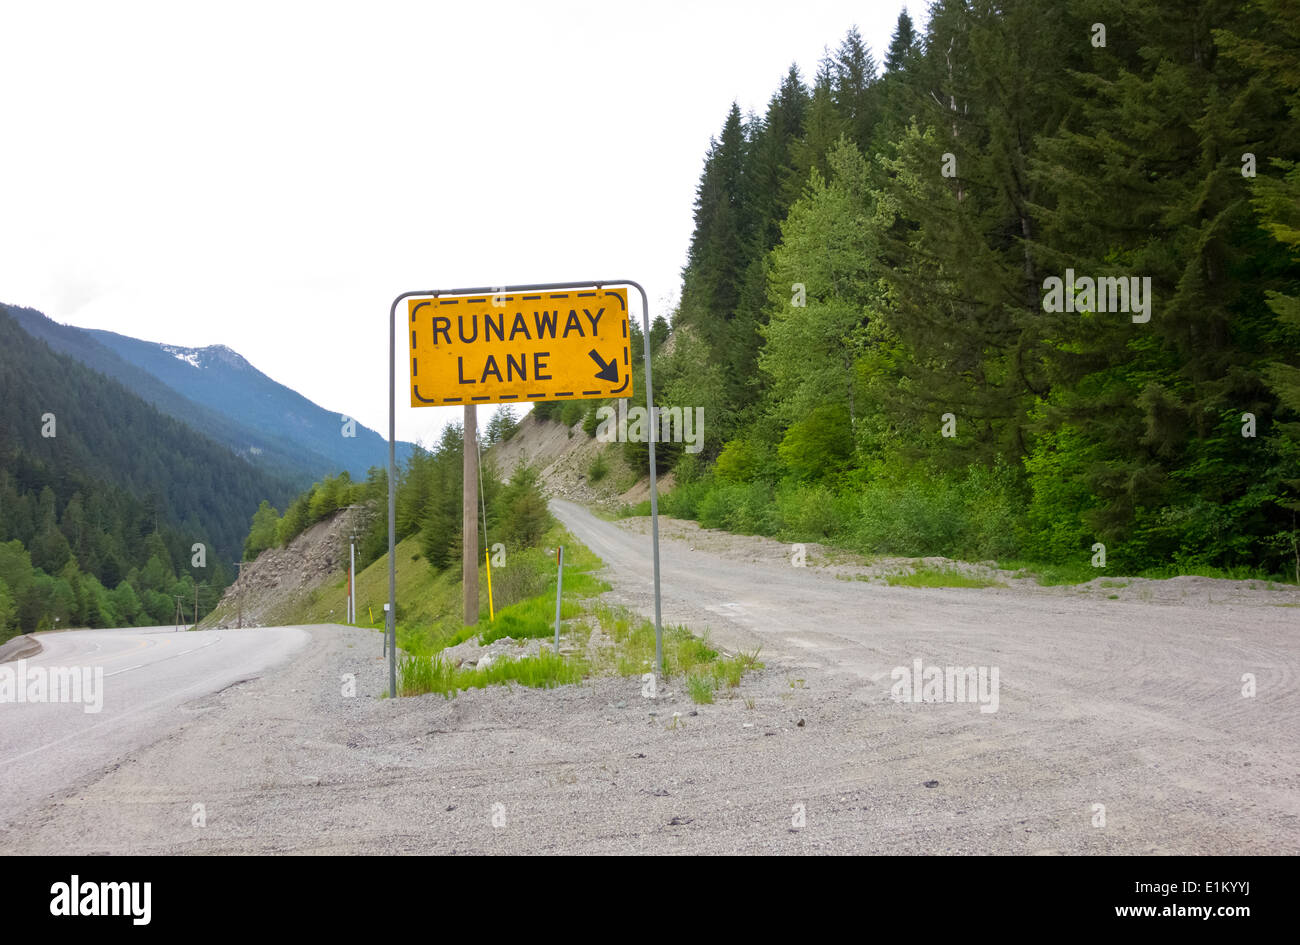 entrance-and-sign-for-runaway-lane-on-a-